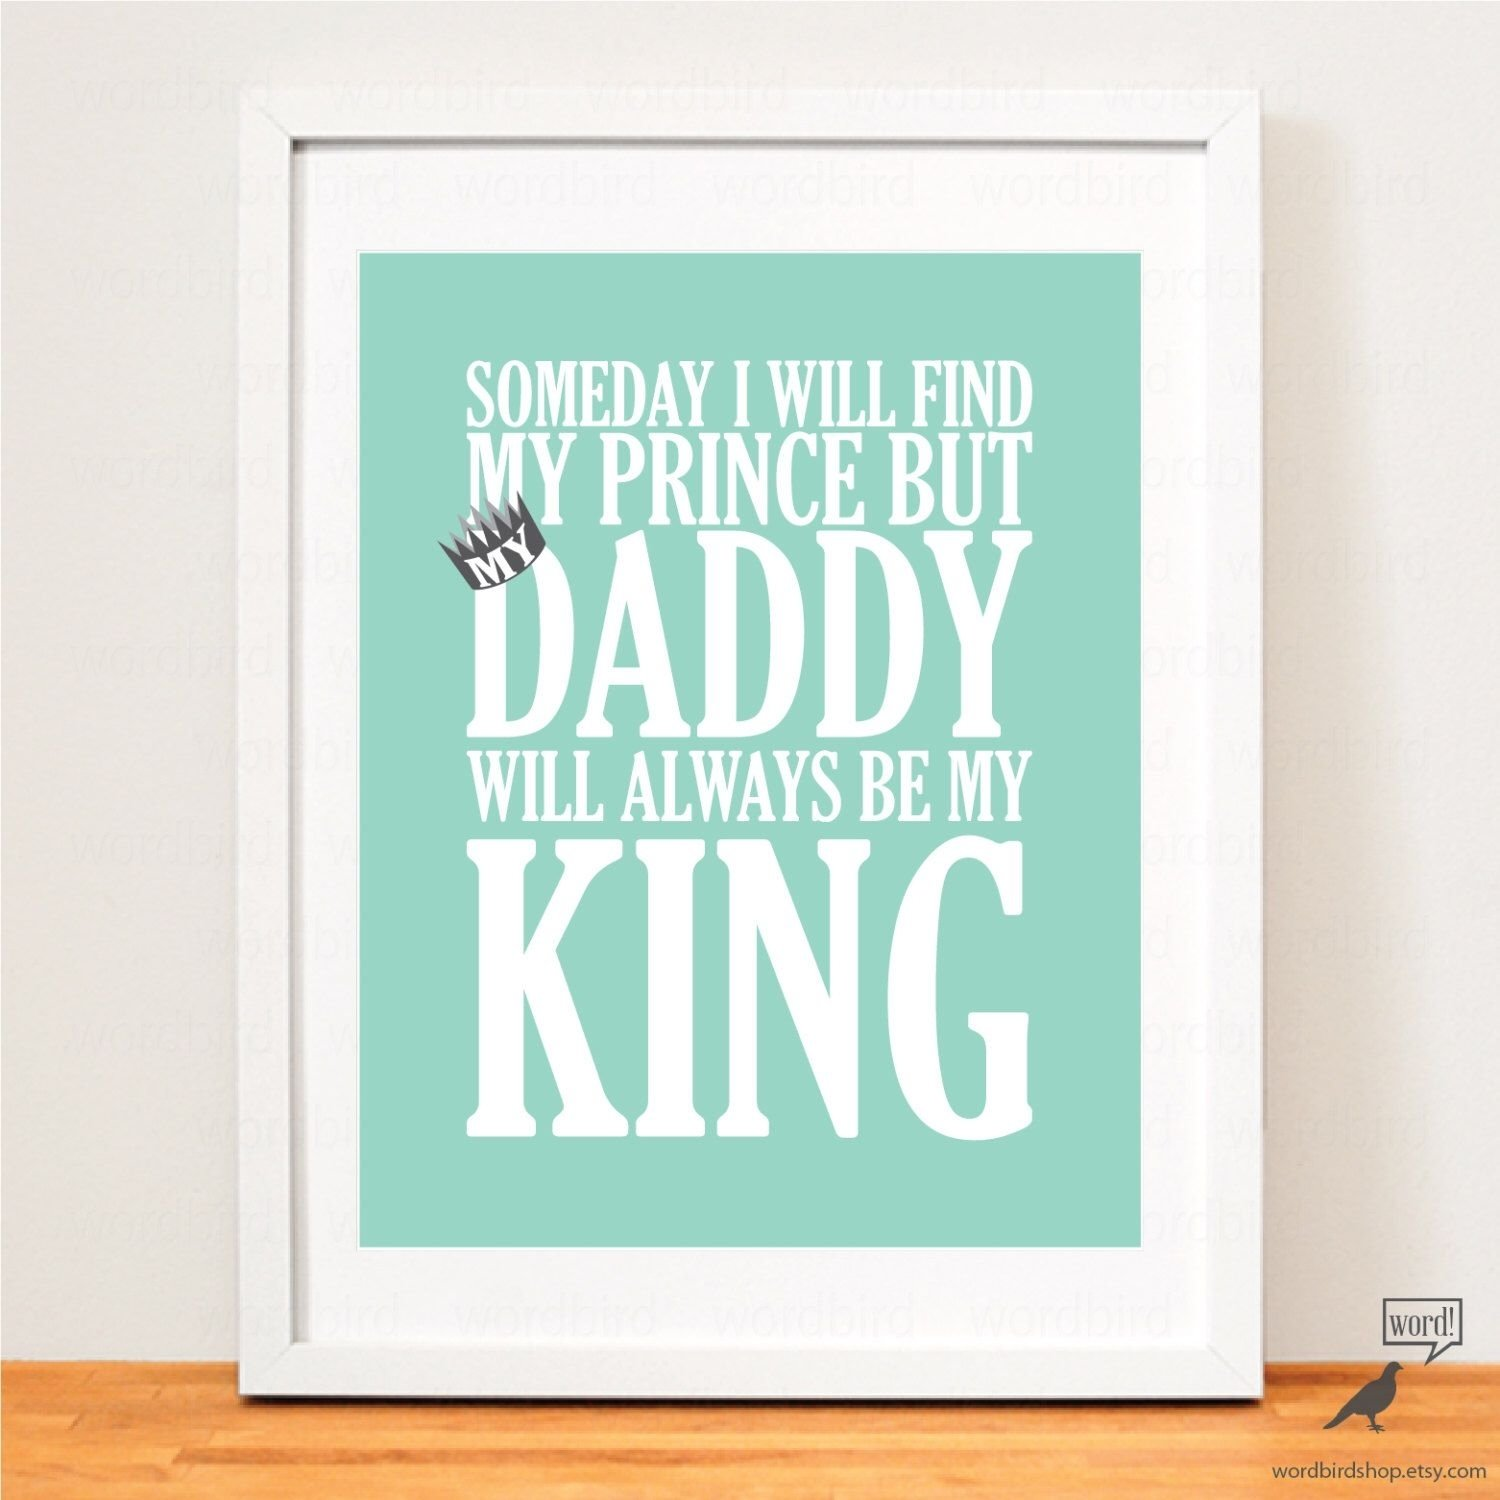 10 Stunning Birthday Gift Ideas For Dad From Daughter Personalized Christmas